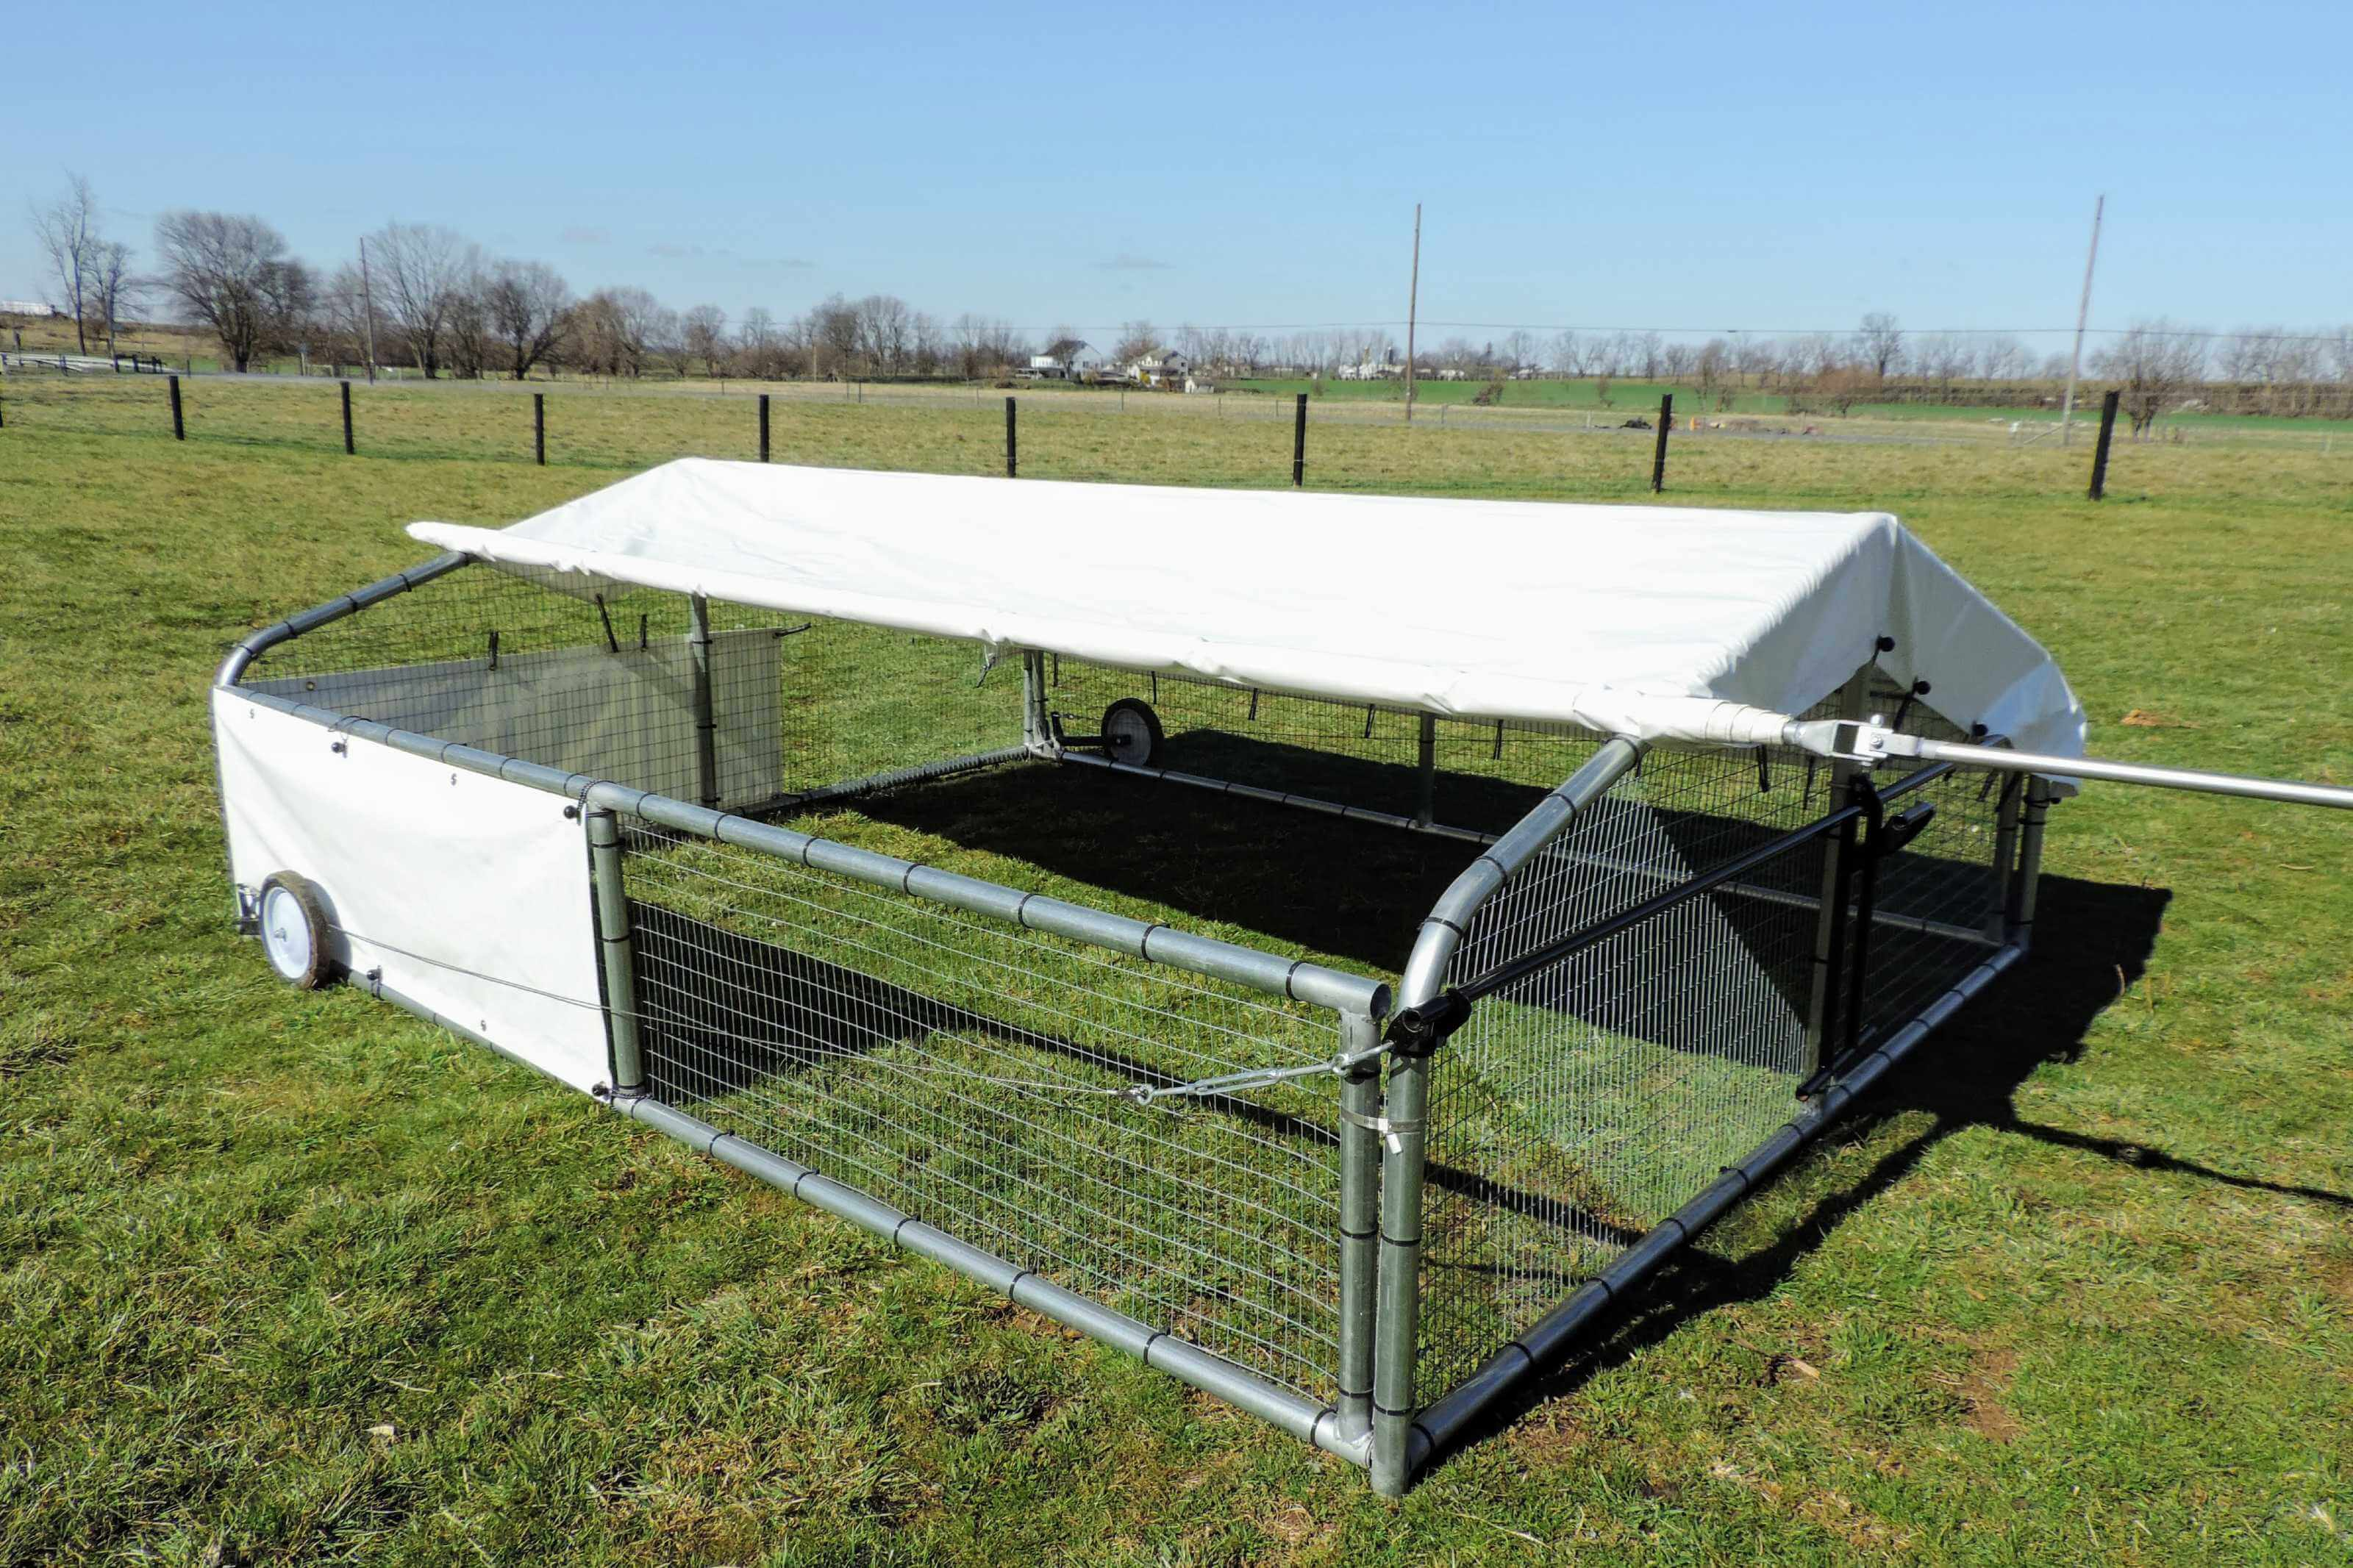 Chicken coop for pastured layers and broilers.